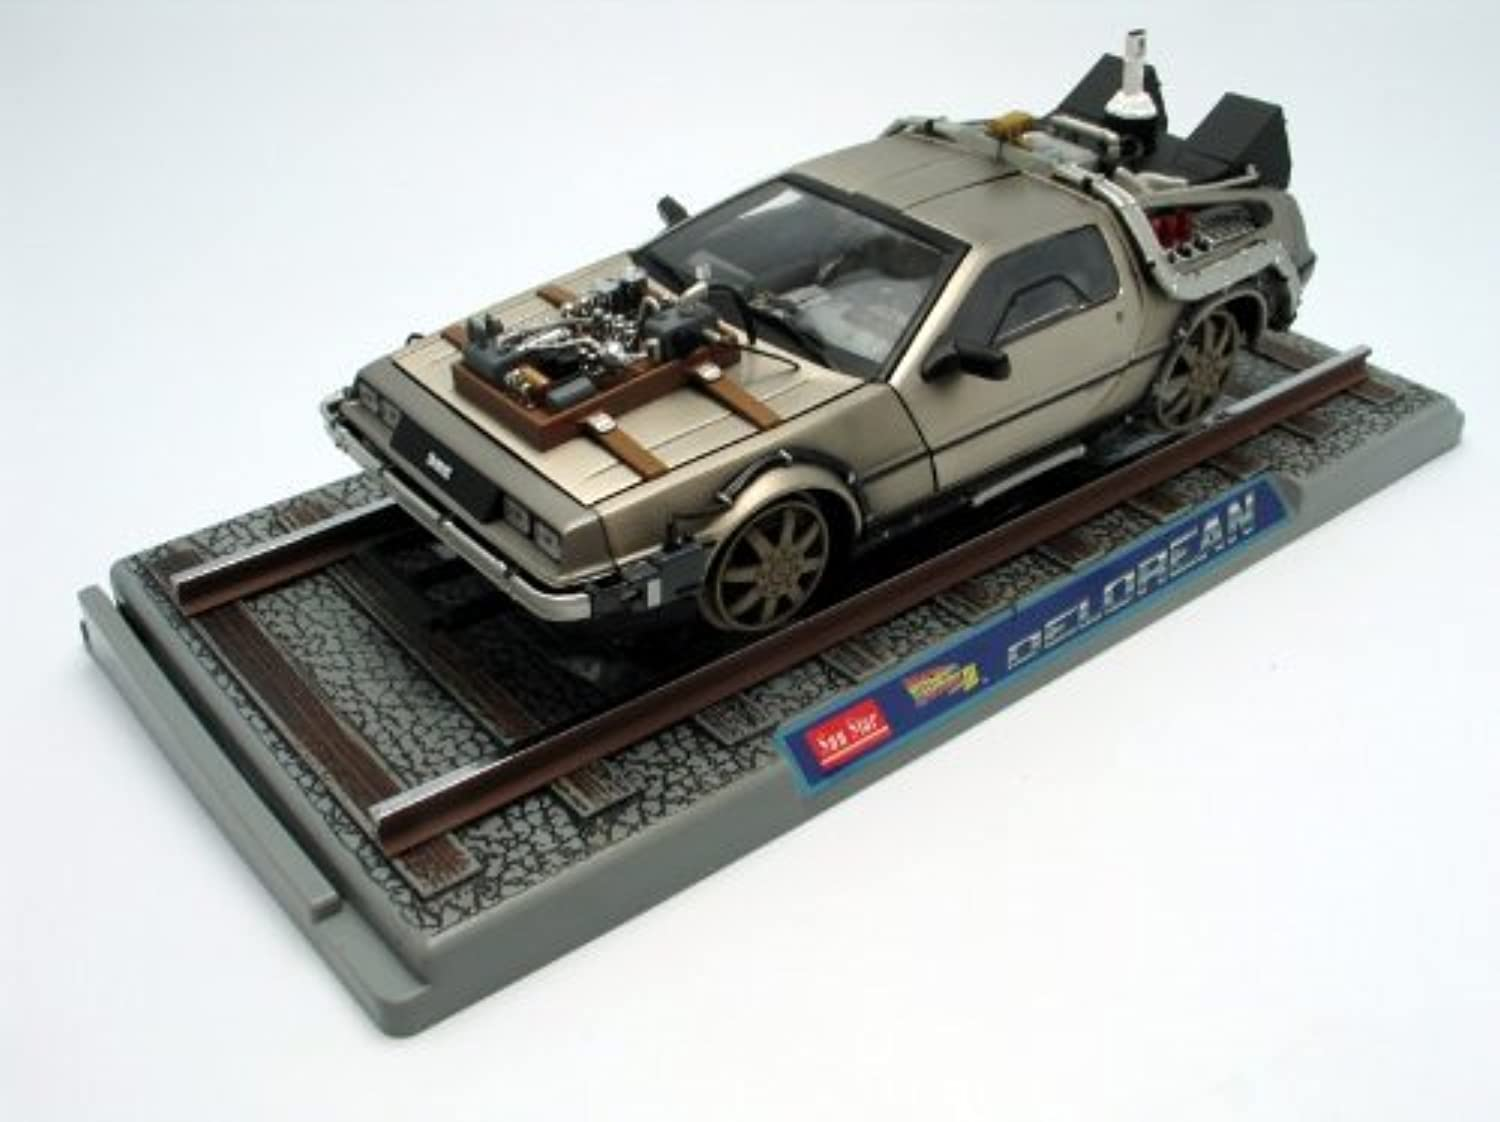 1982 DeLorean  Back To The Future III Diecast model car on Railroad Tracks 1 18 by Sun Star Toys